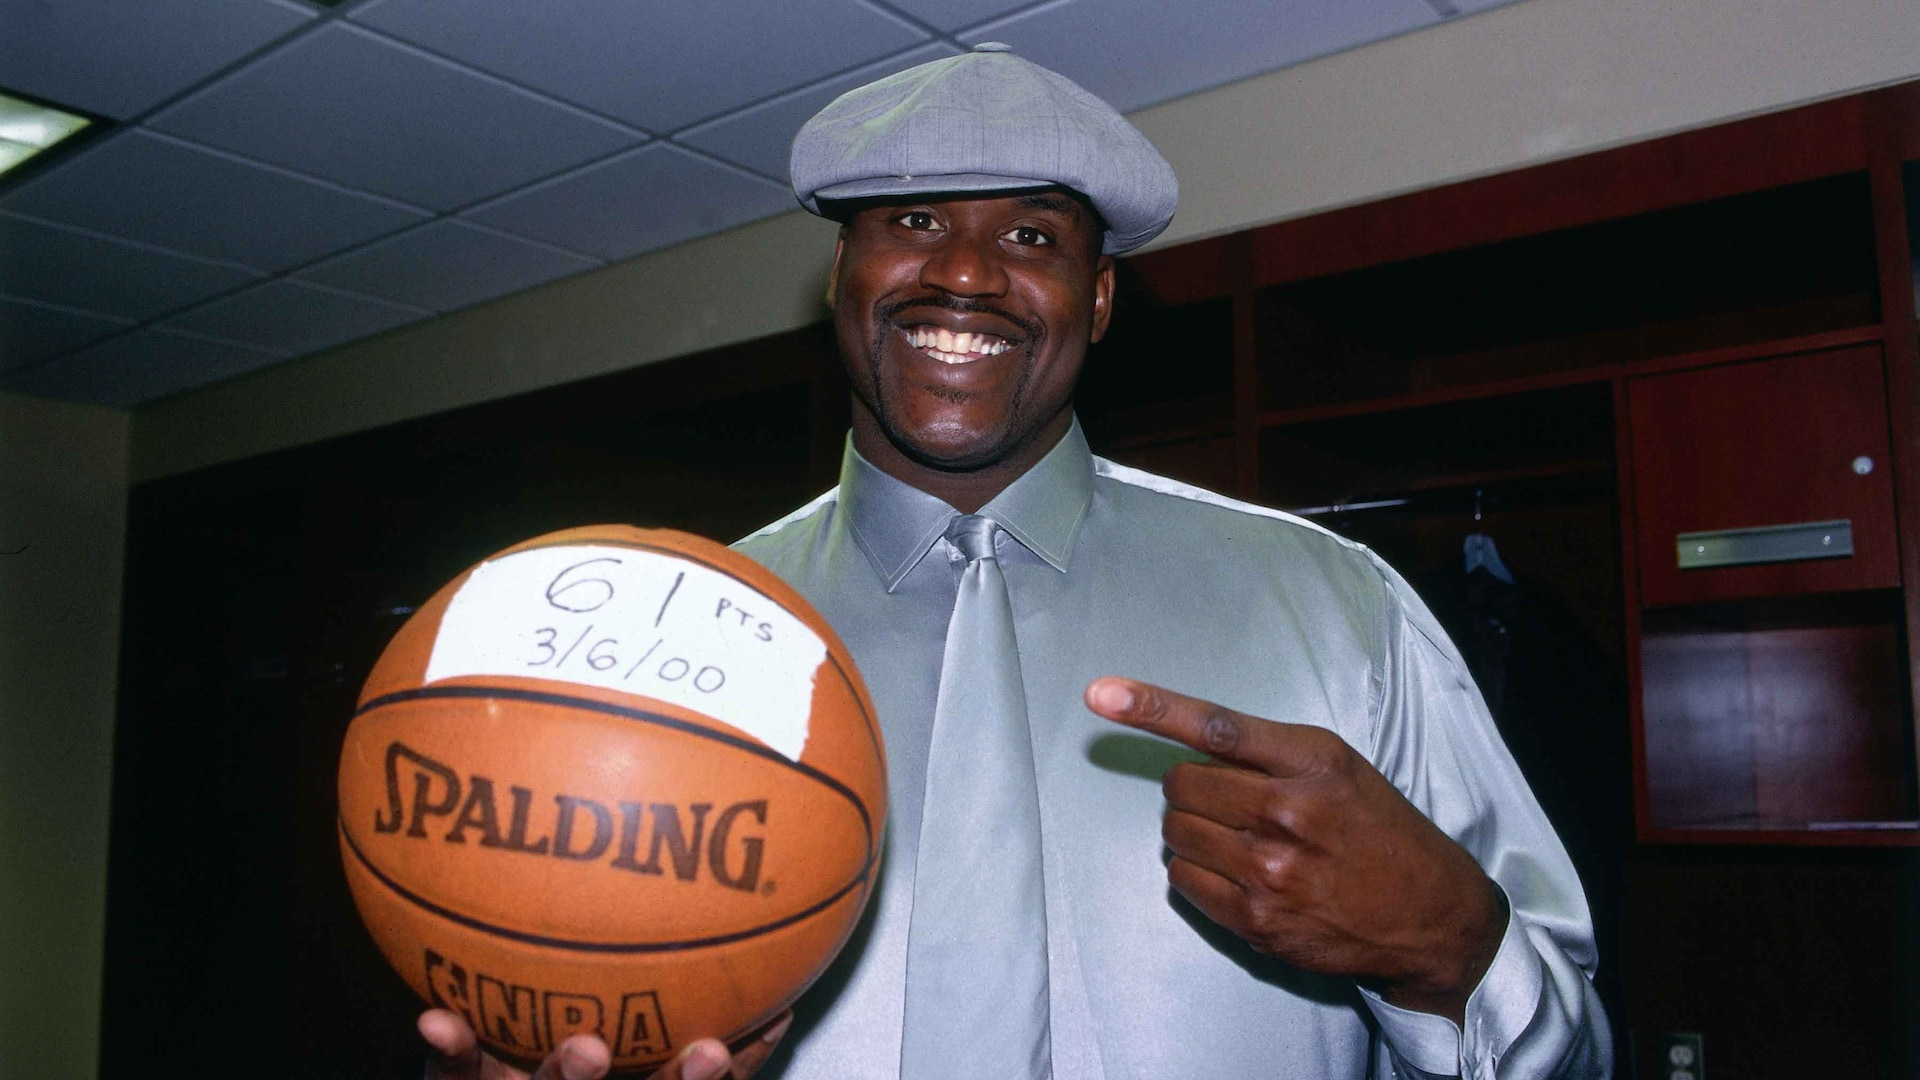 Legendary Moments In NBA History: Shaquille O'Neal scores 61 points on his 28th birthday